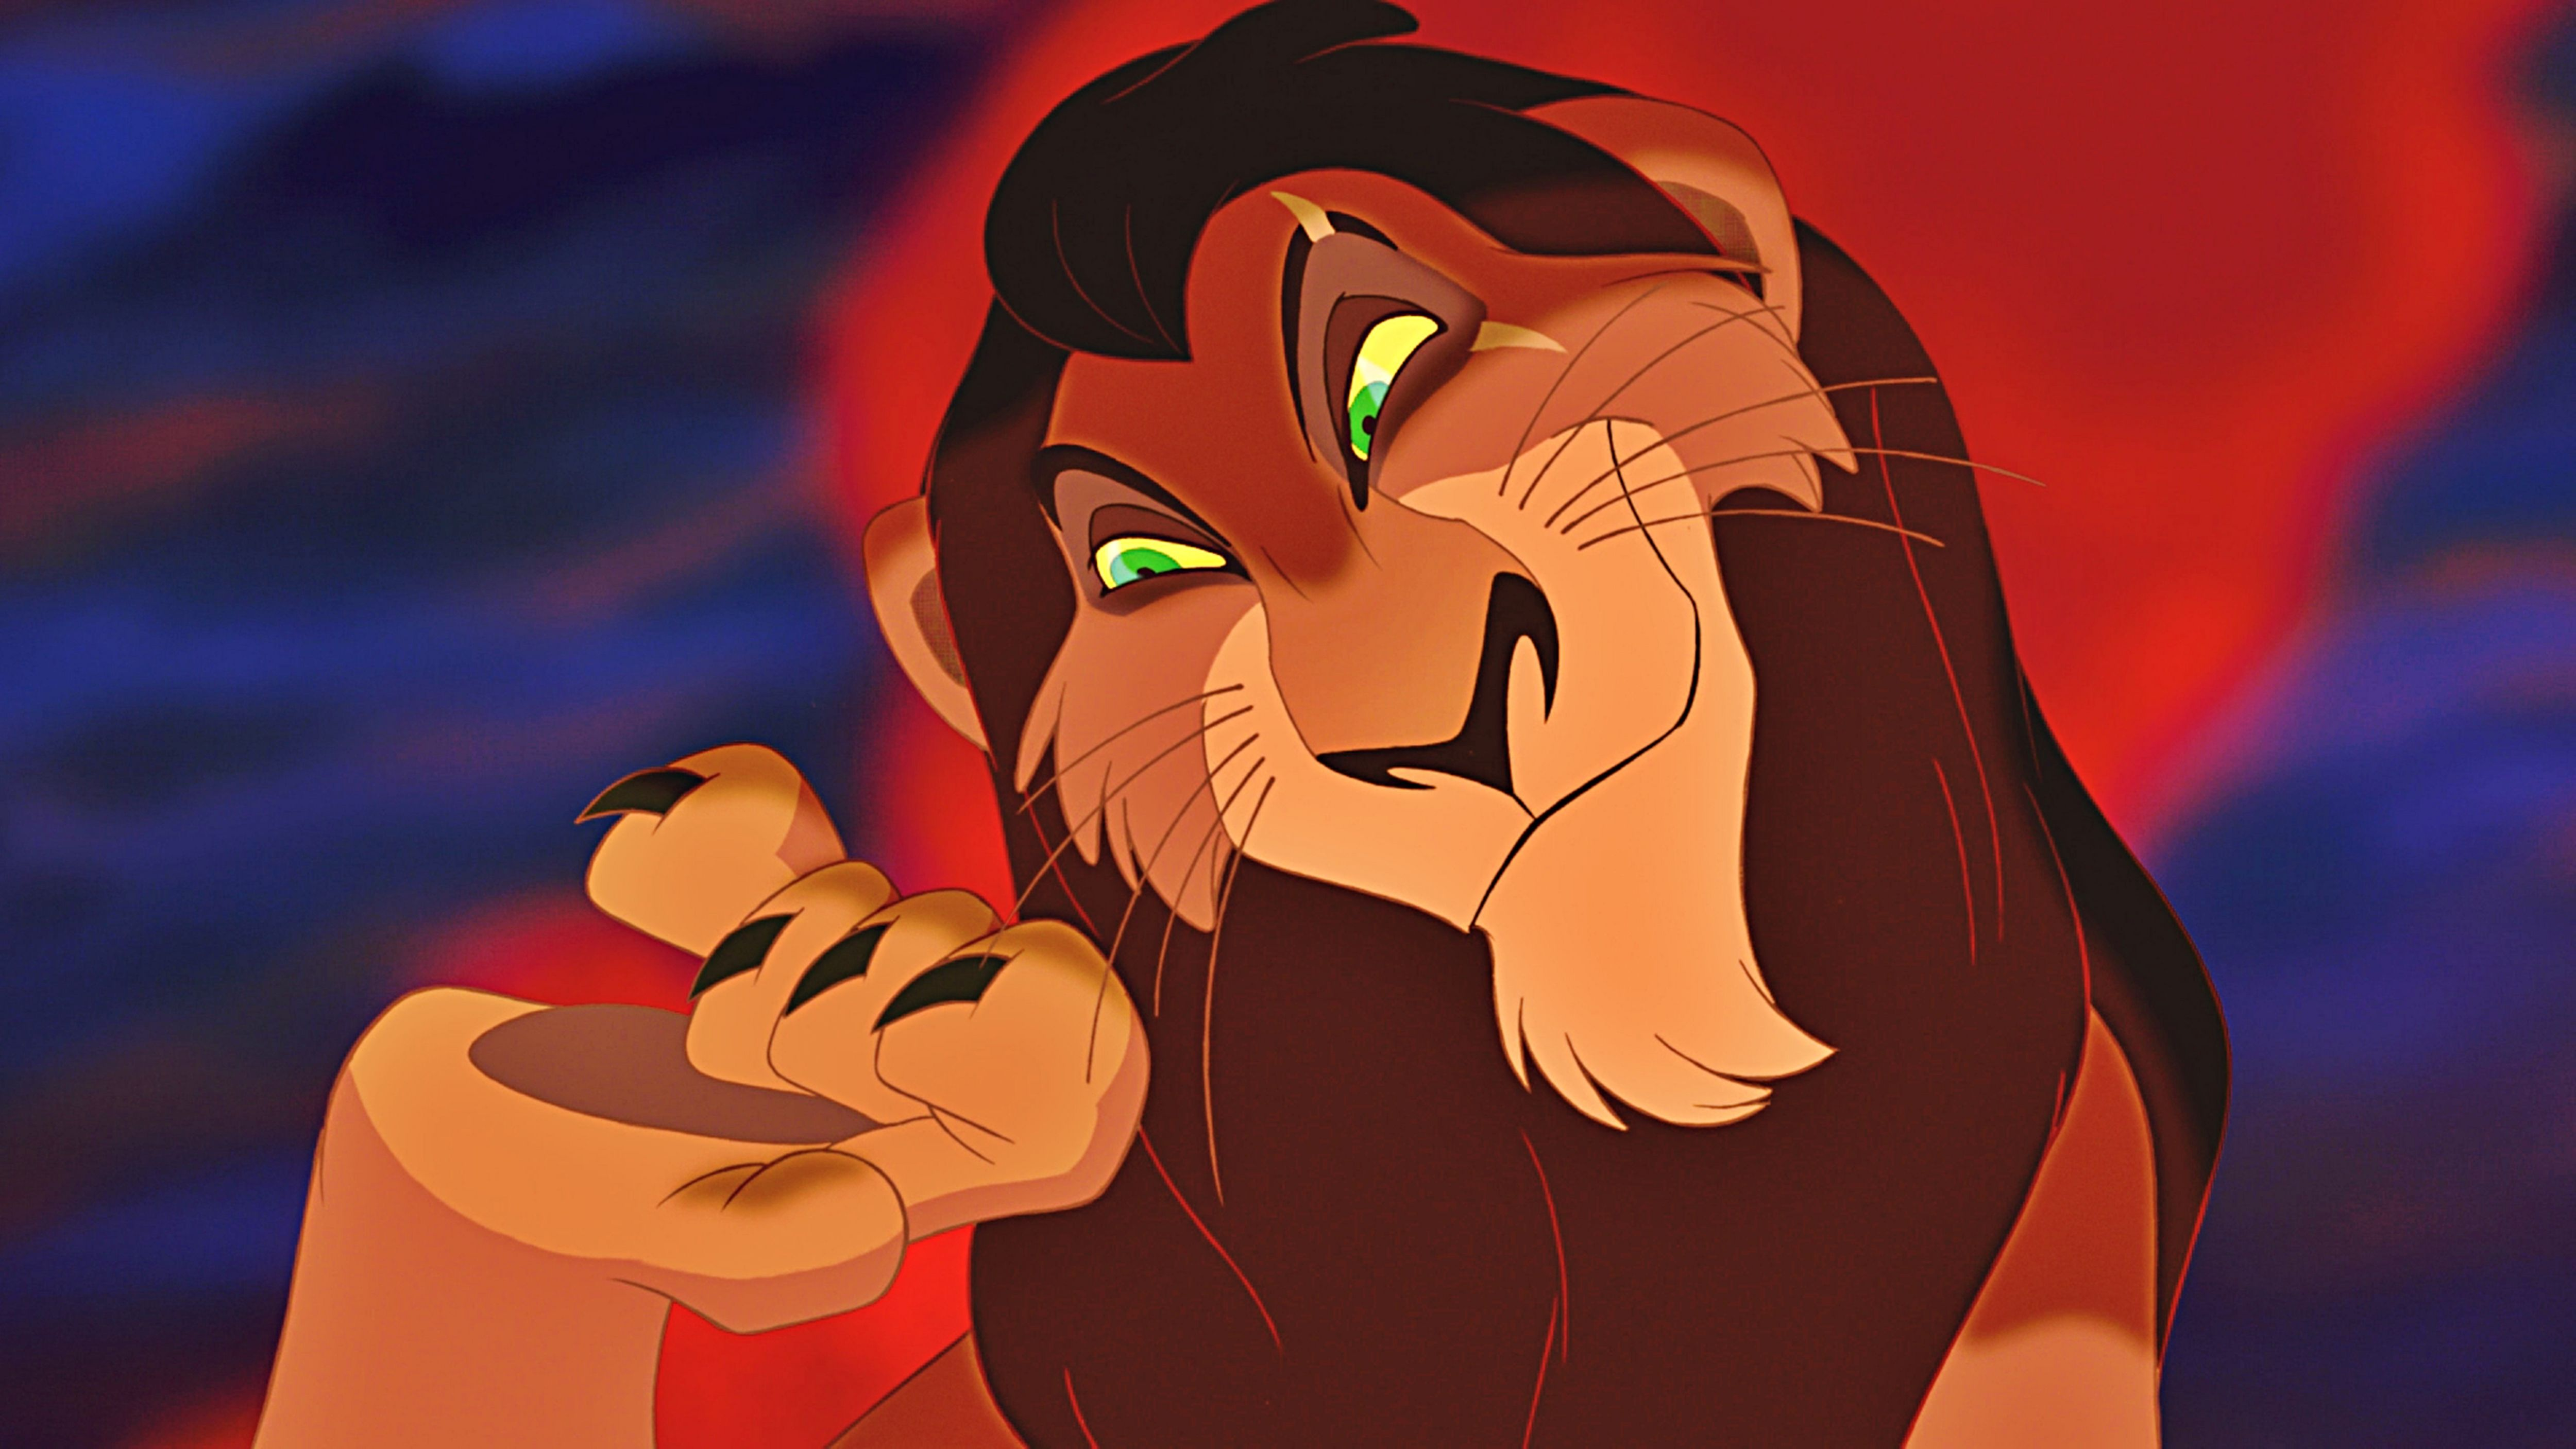 Lion king characters scar - photo#29